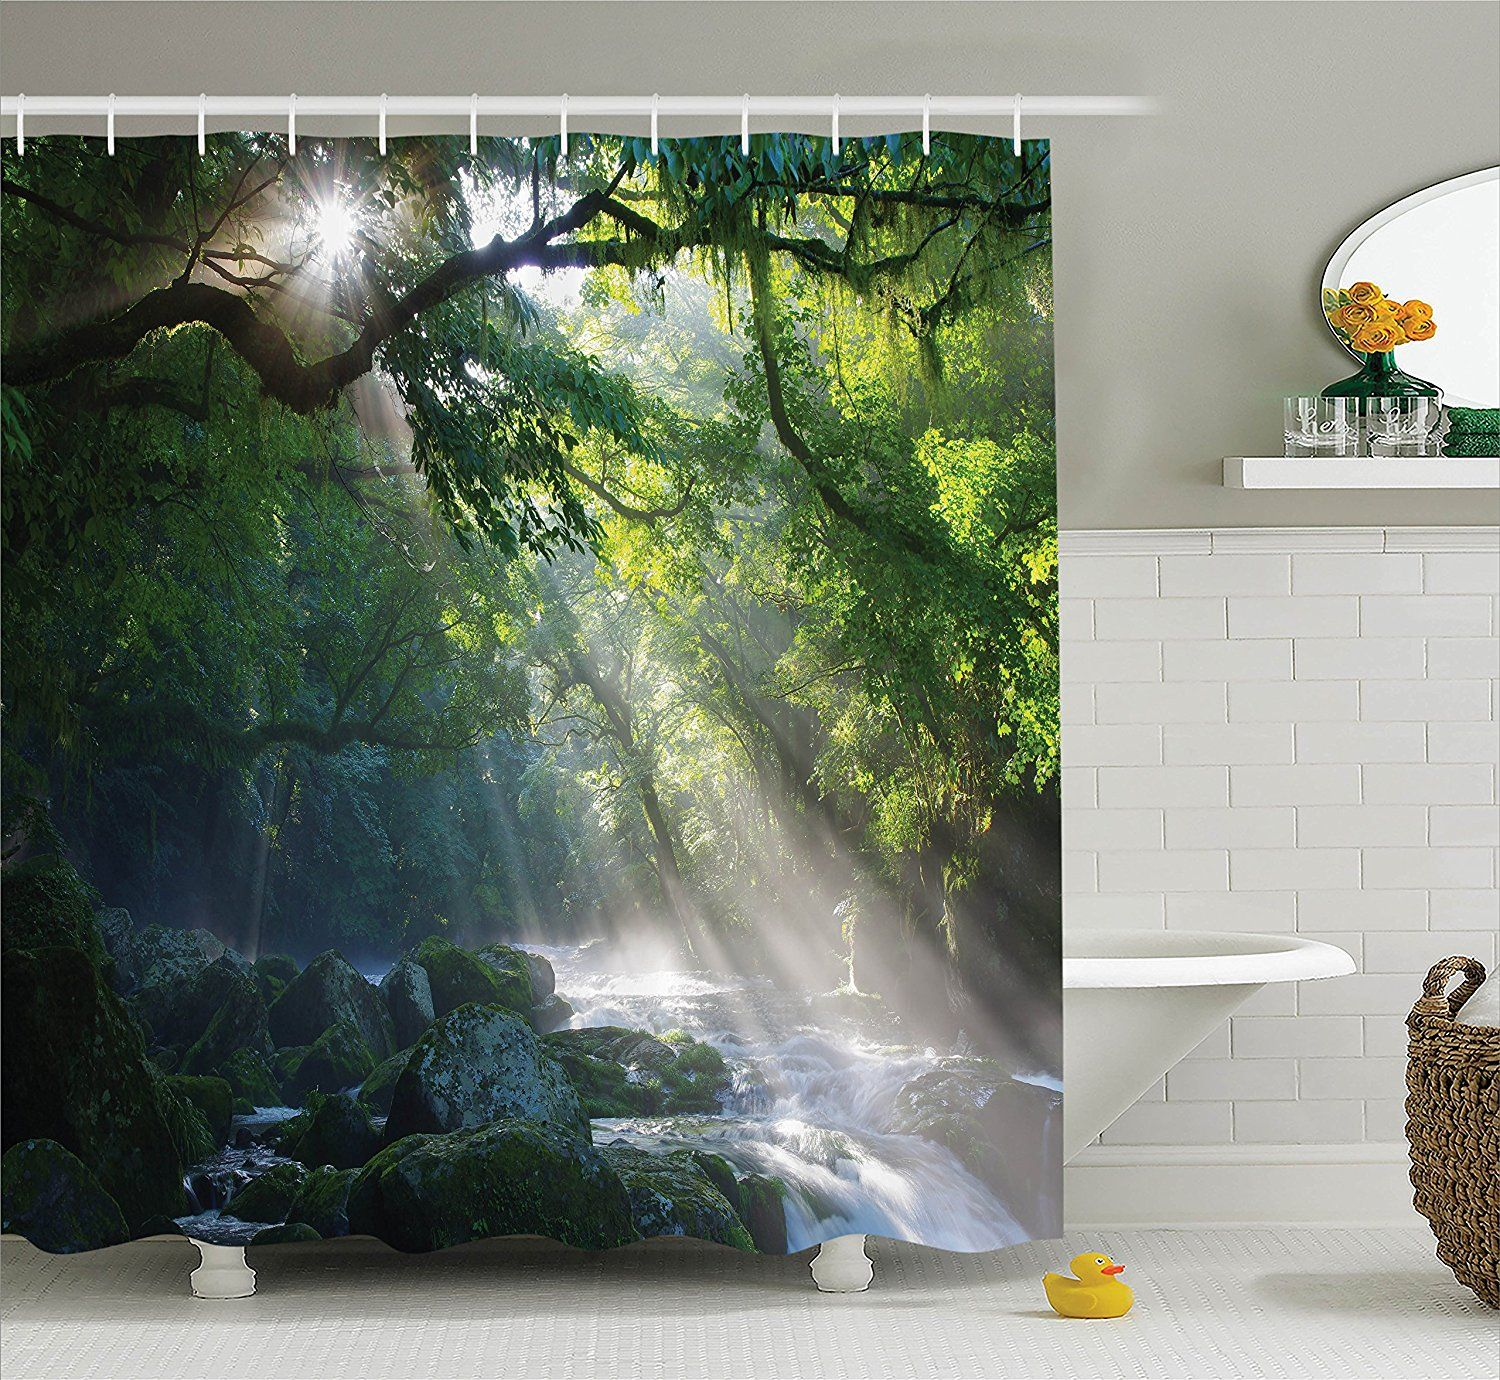 Amazon Com Rainforest Decorations Shower Curtain Set By Ambesonne Stream In The Jungle Shower Curtain Decor Bathroom Shower Curtain Sets Shower Curtain Sets